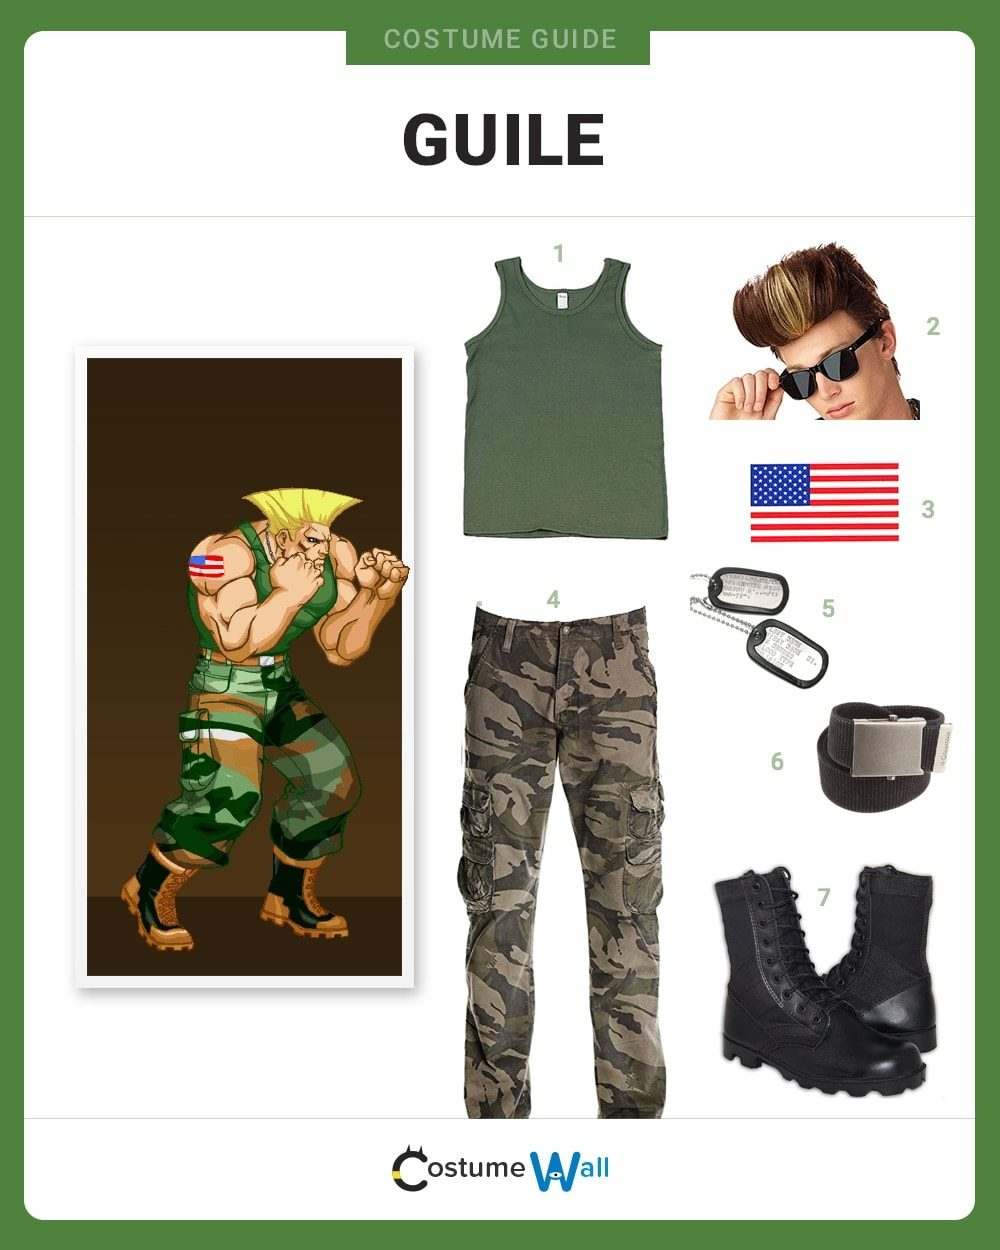 Guile Costume Guide